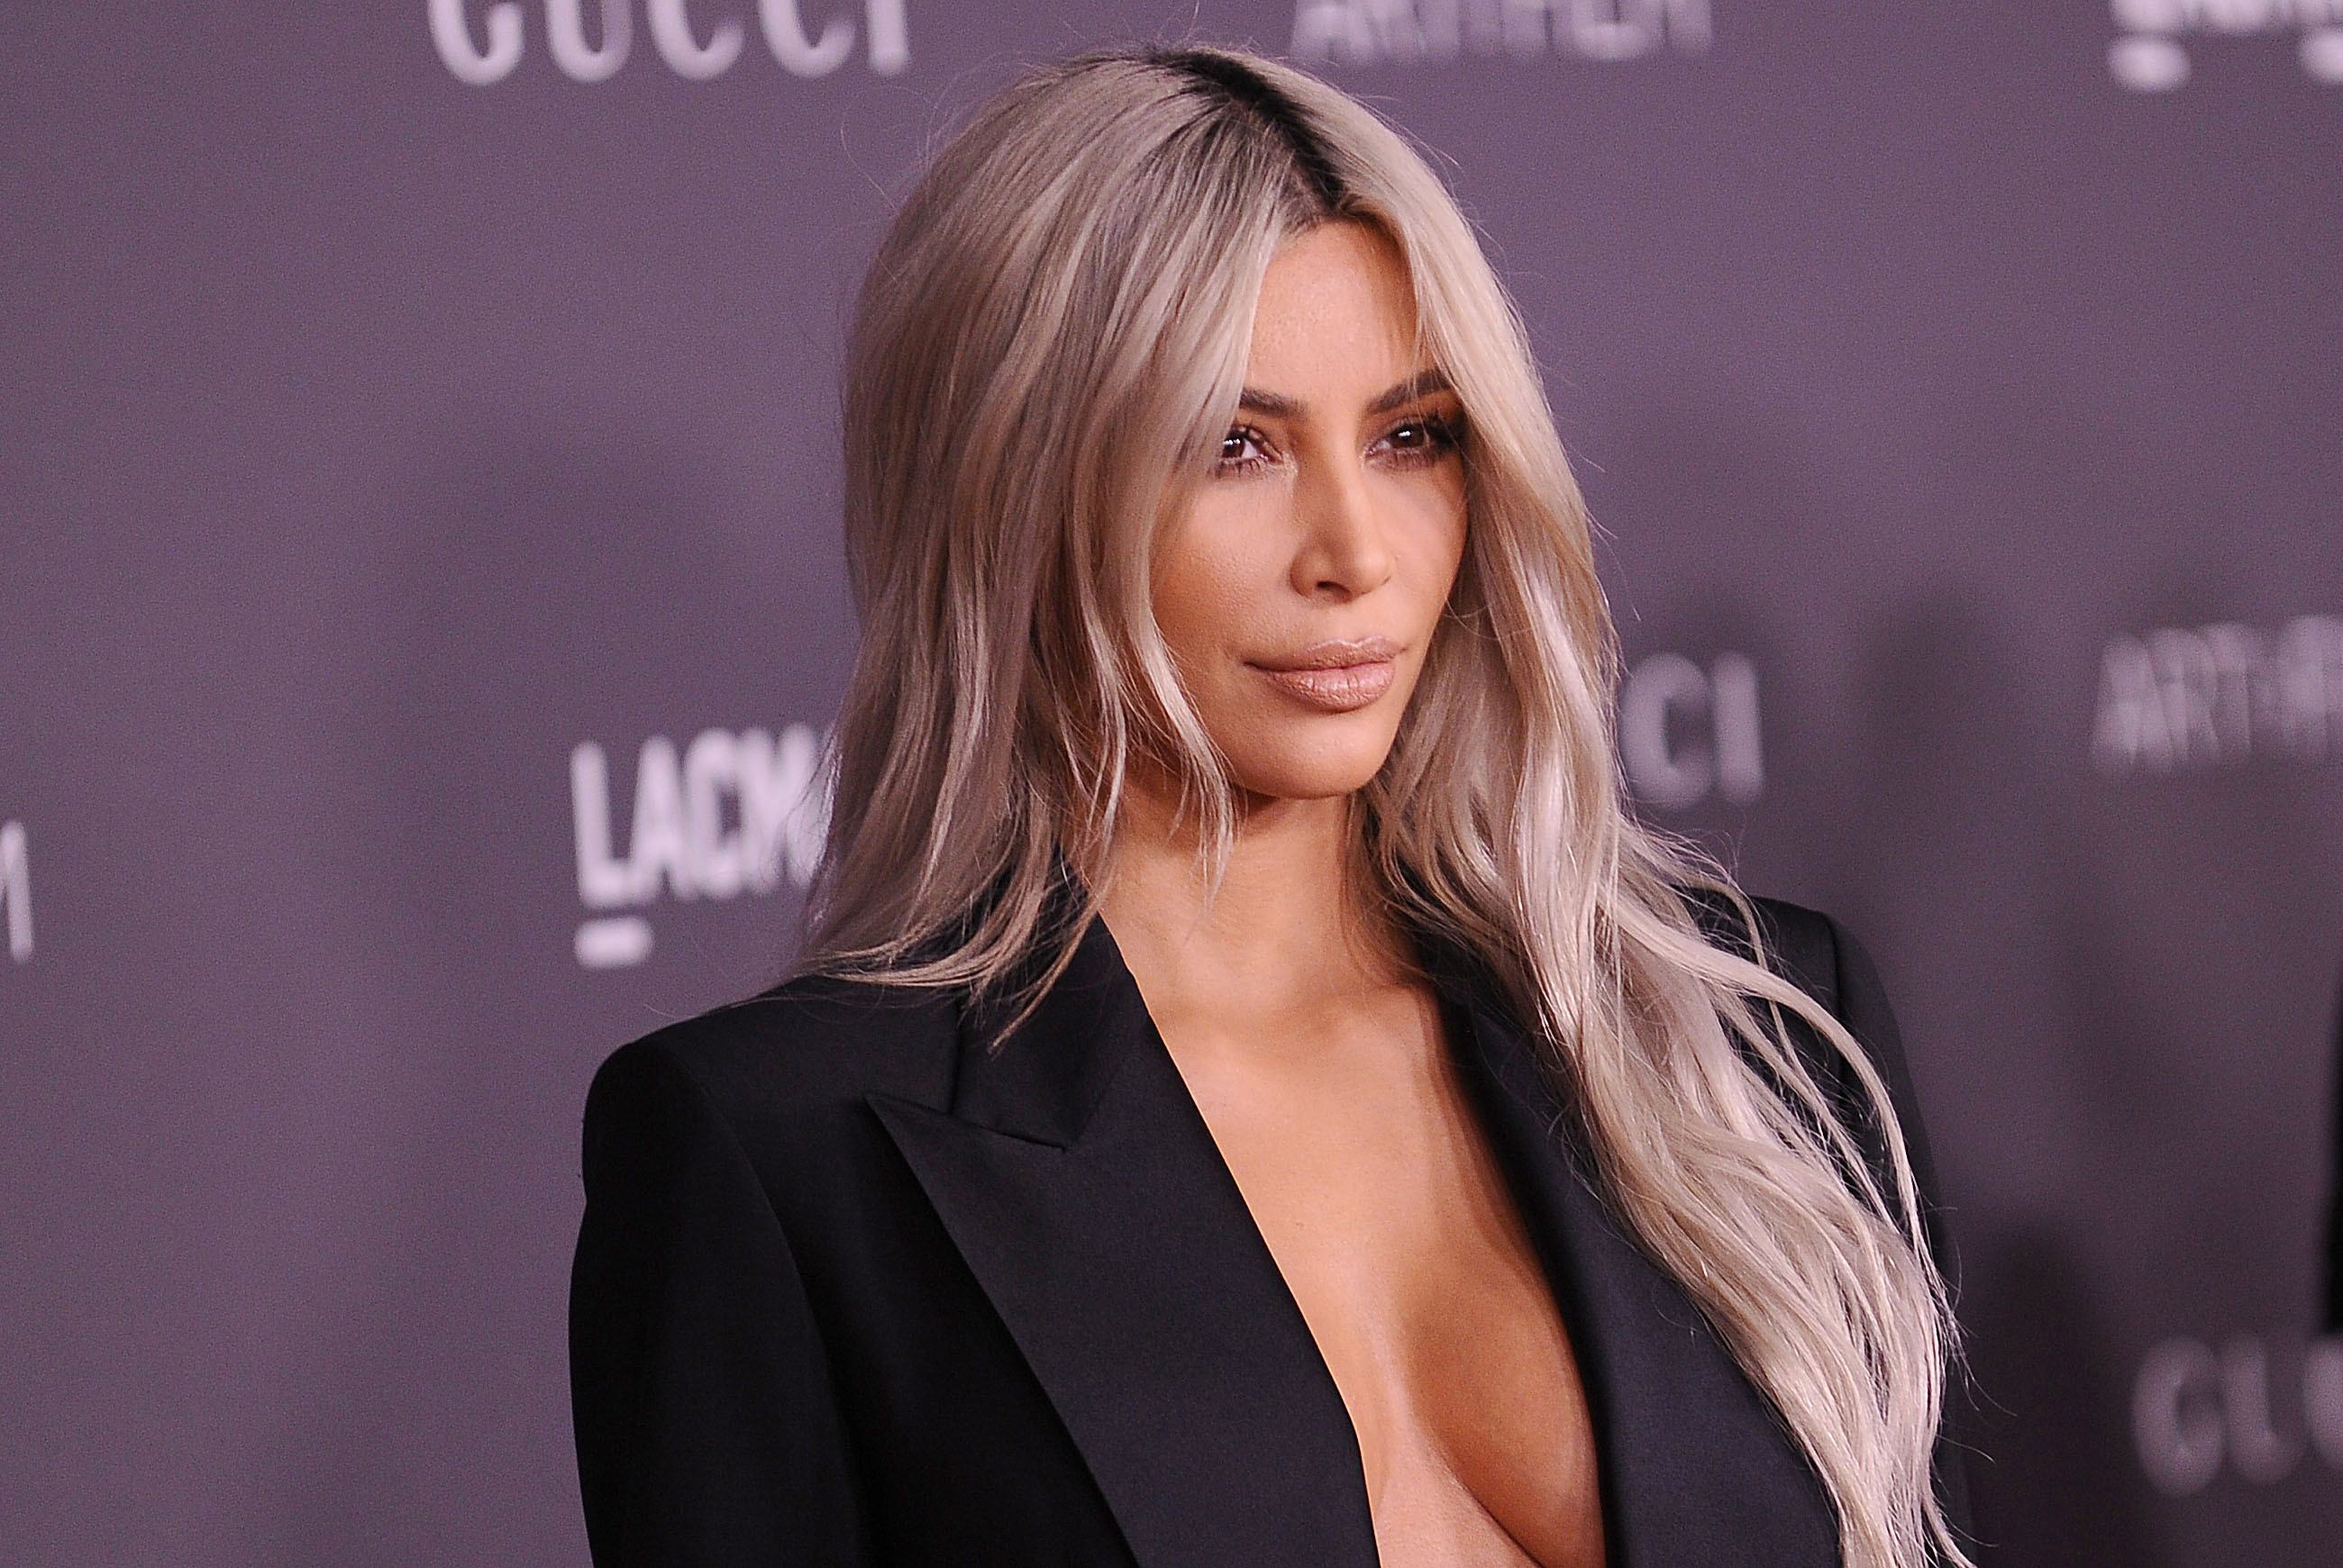 Kim Kardashian is studying to become a lawyer, and People Are Obsessed